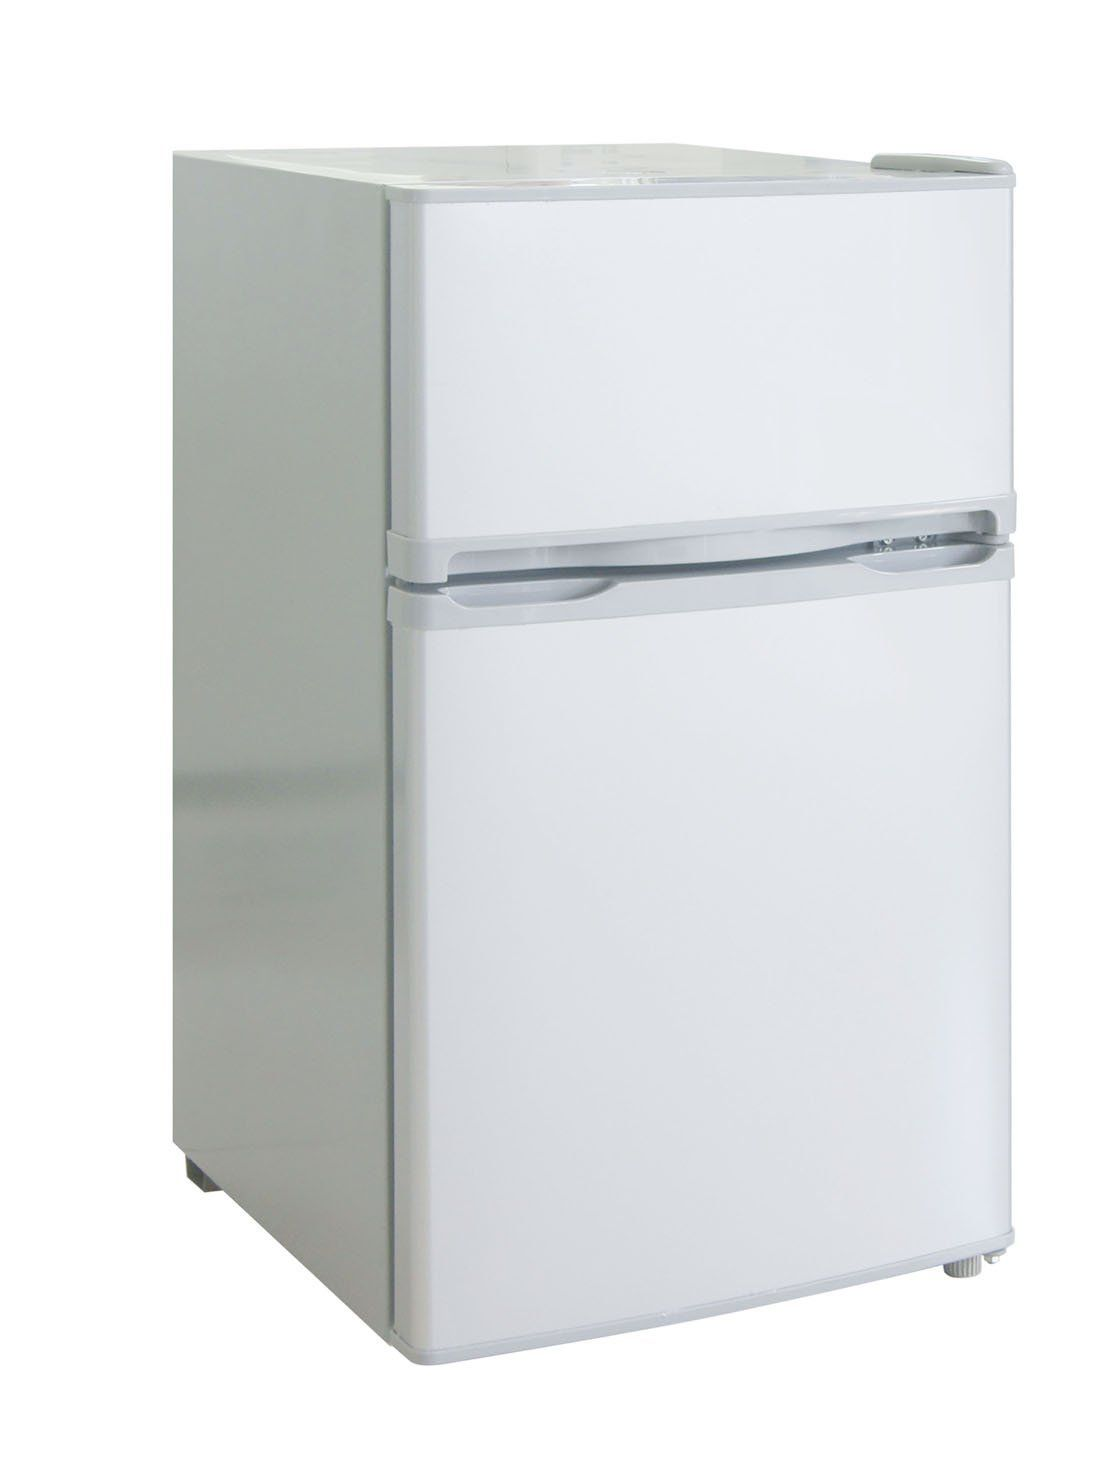 Rca Igloo 3 2 Cubic Foot 2 Door Fridge And Freezer White Click Image For More Details Refrigerator Fridge Freezers Mini Fridge With Freezer